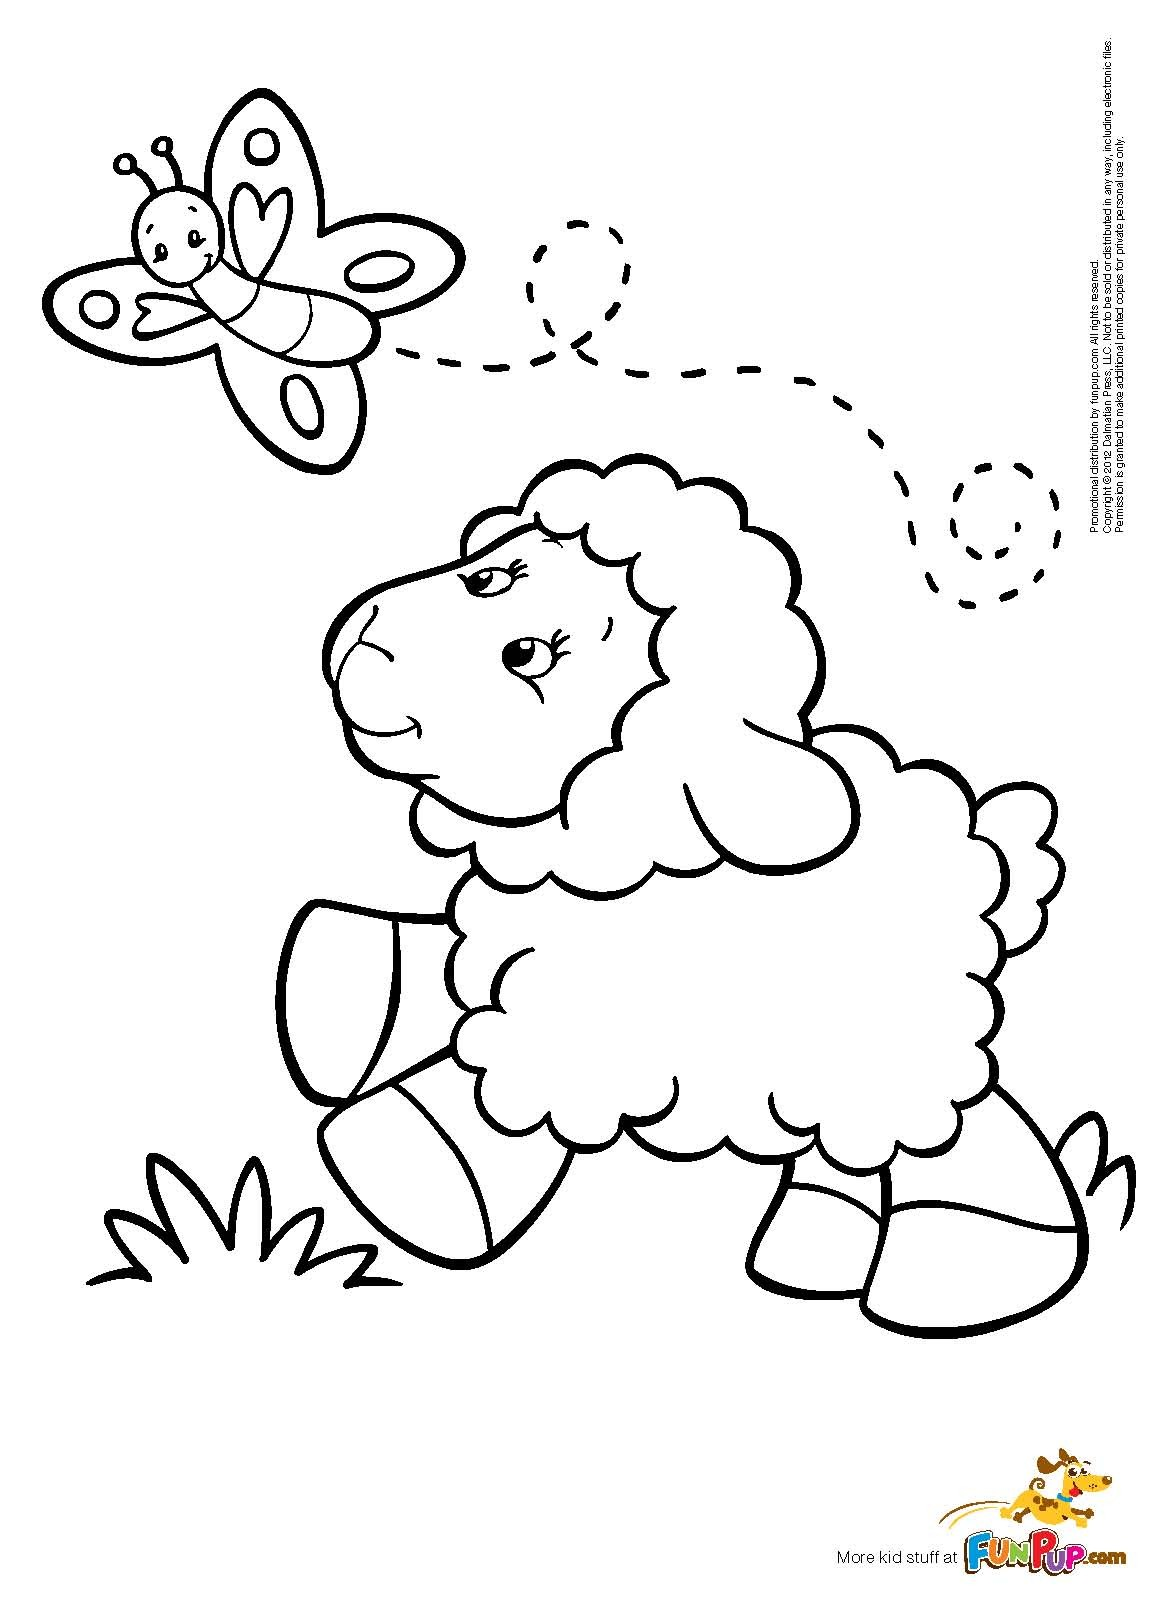 Electronic Coloring Pages at GetDrawings.com   Free for personal use ...